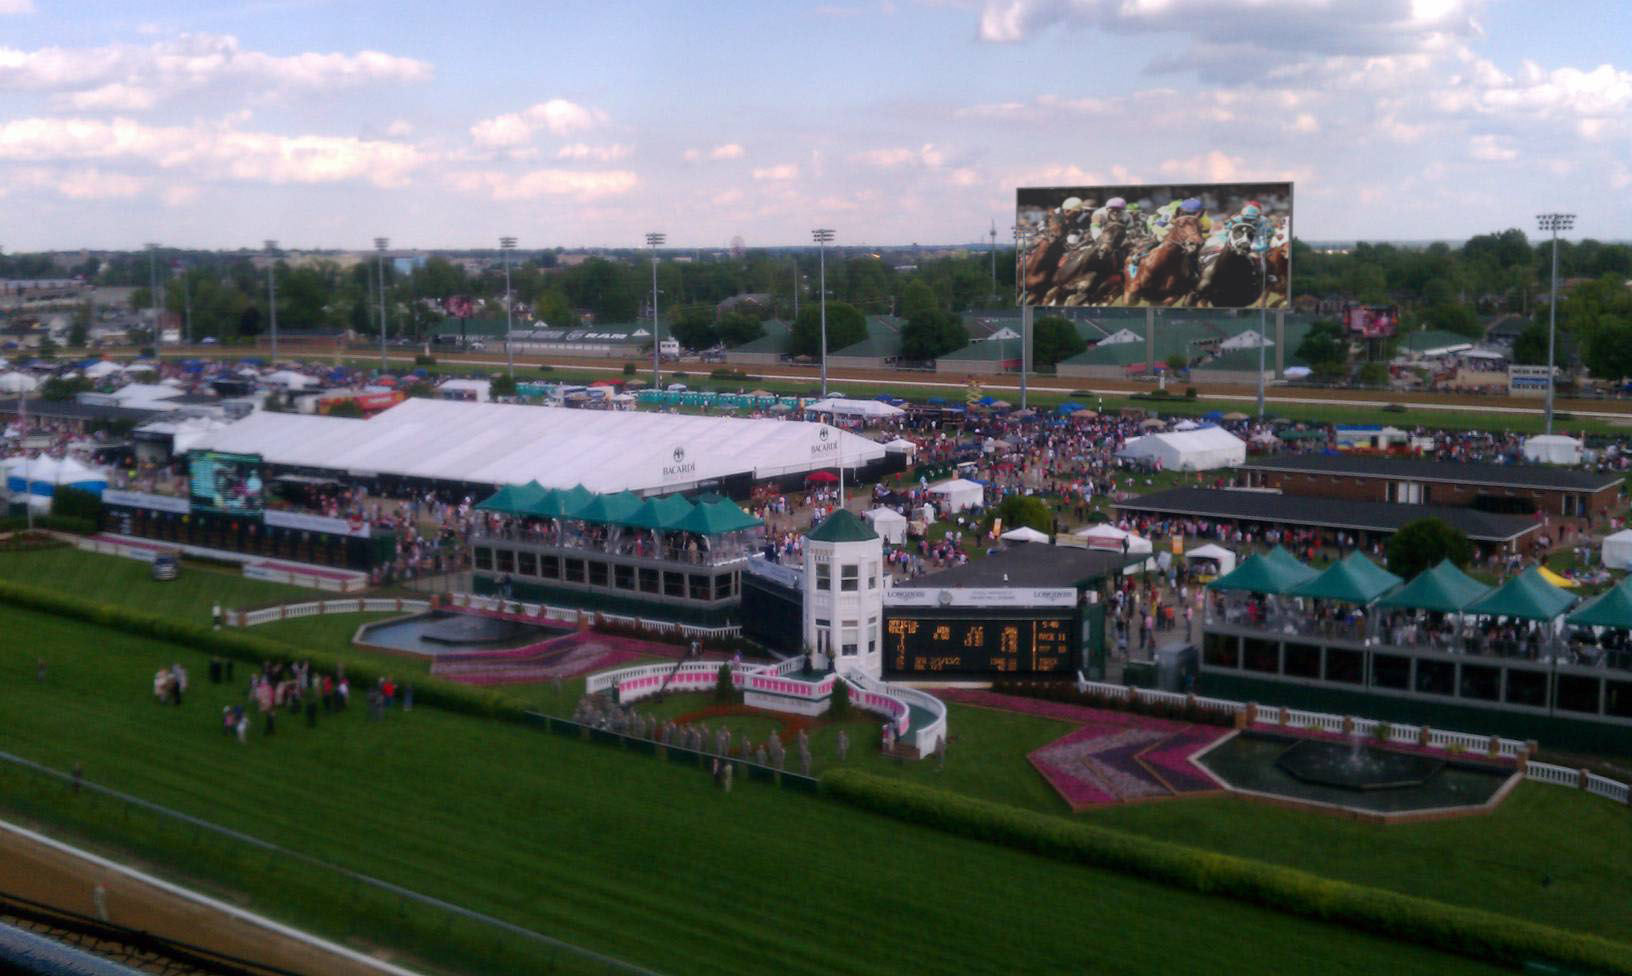 churchill downs will have the world's largest 4k display at 15,224